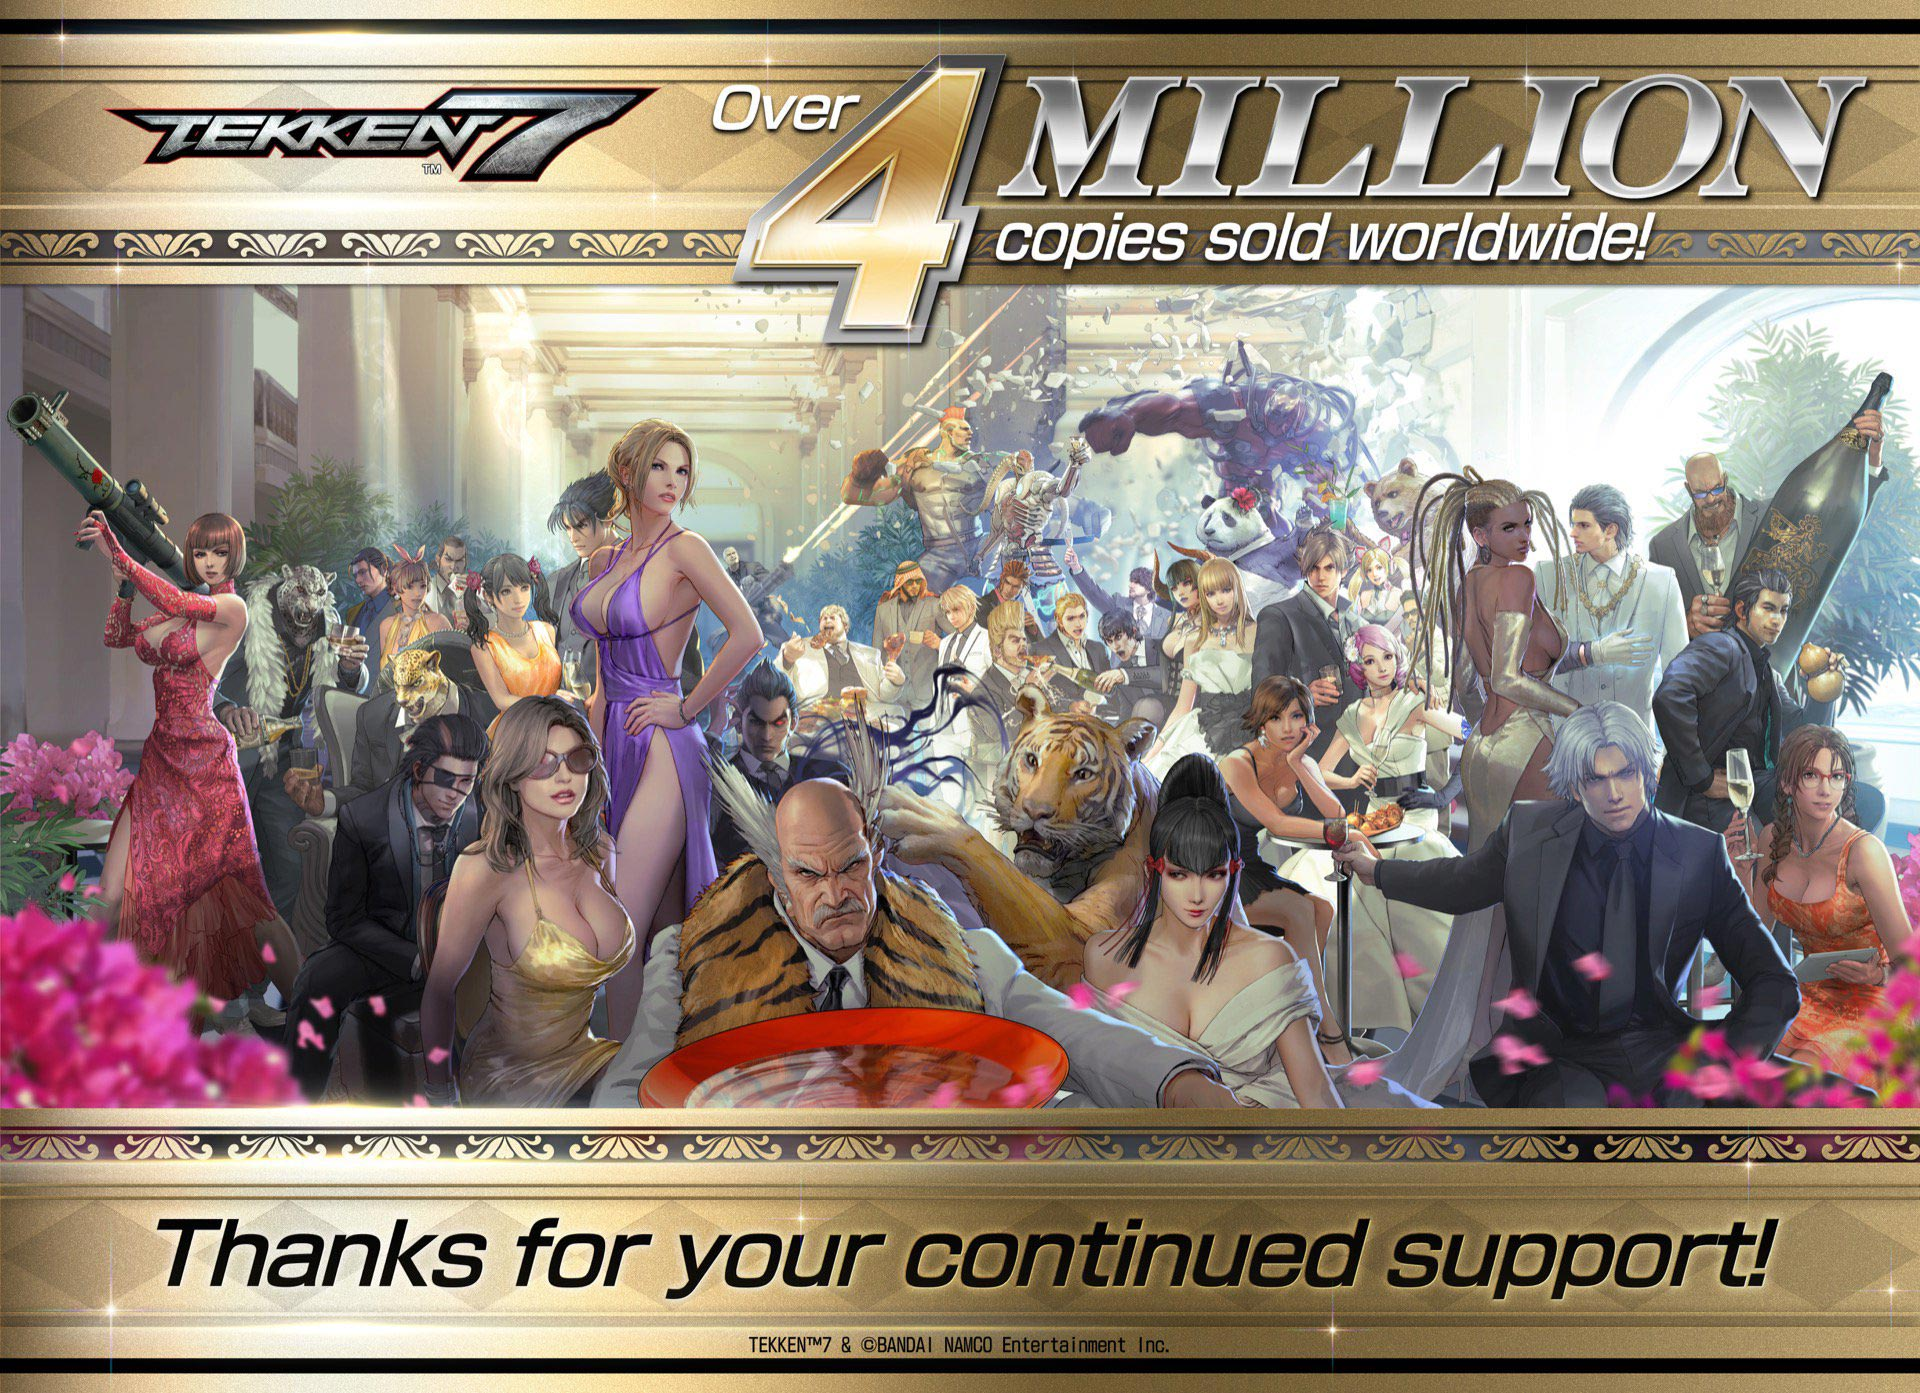 Tekken 7 hits over 4 million copies sold 2 out of 2 image gallery